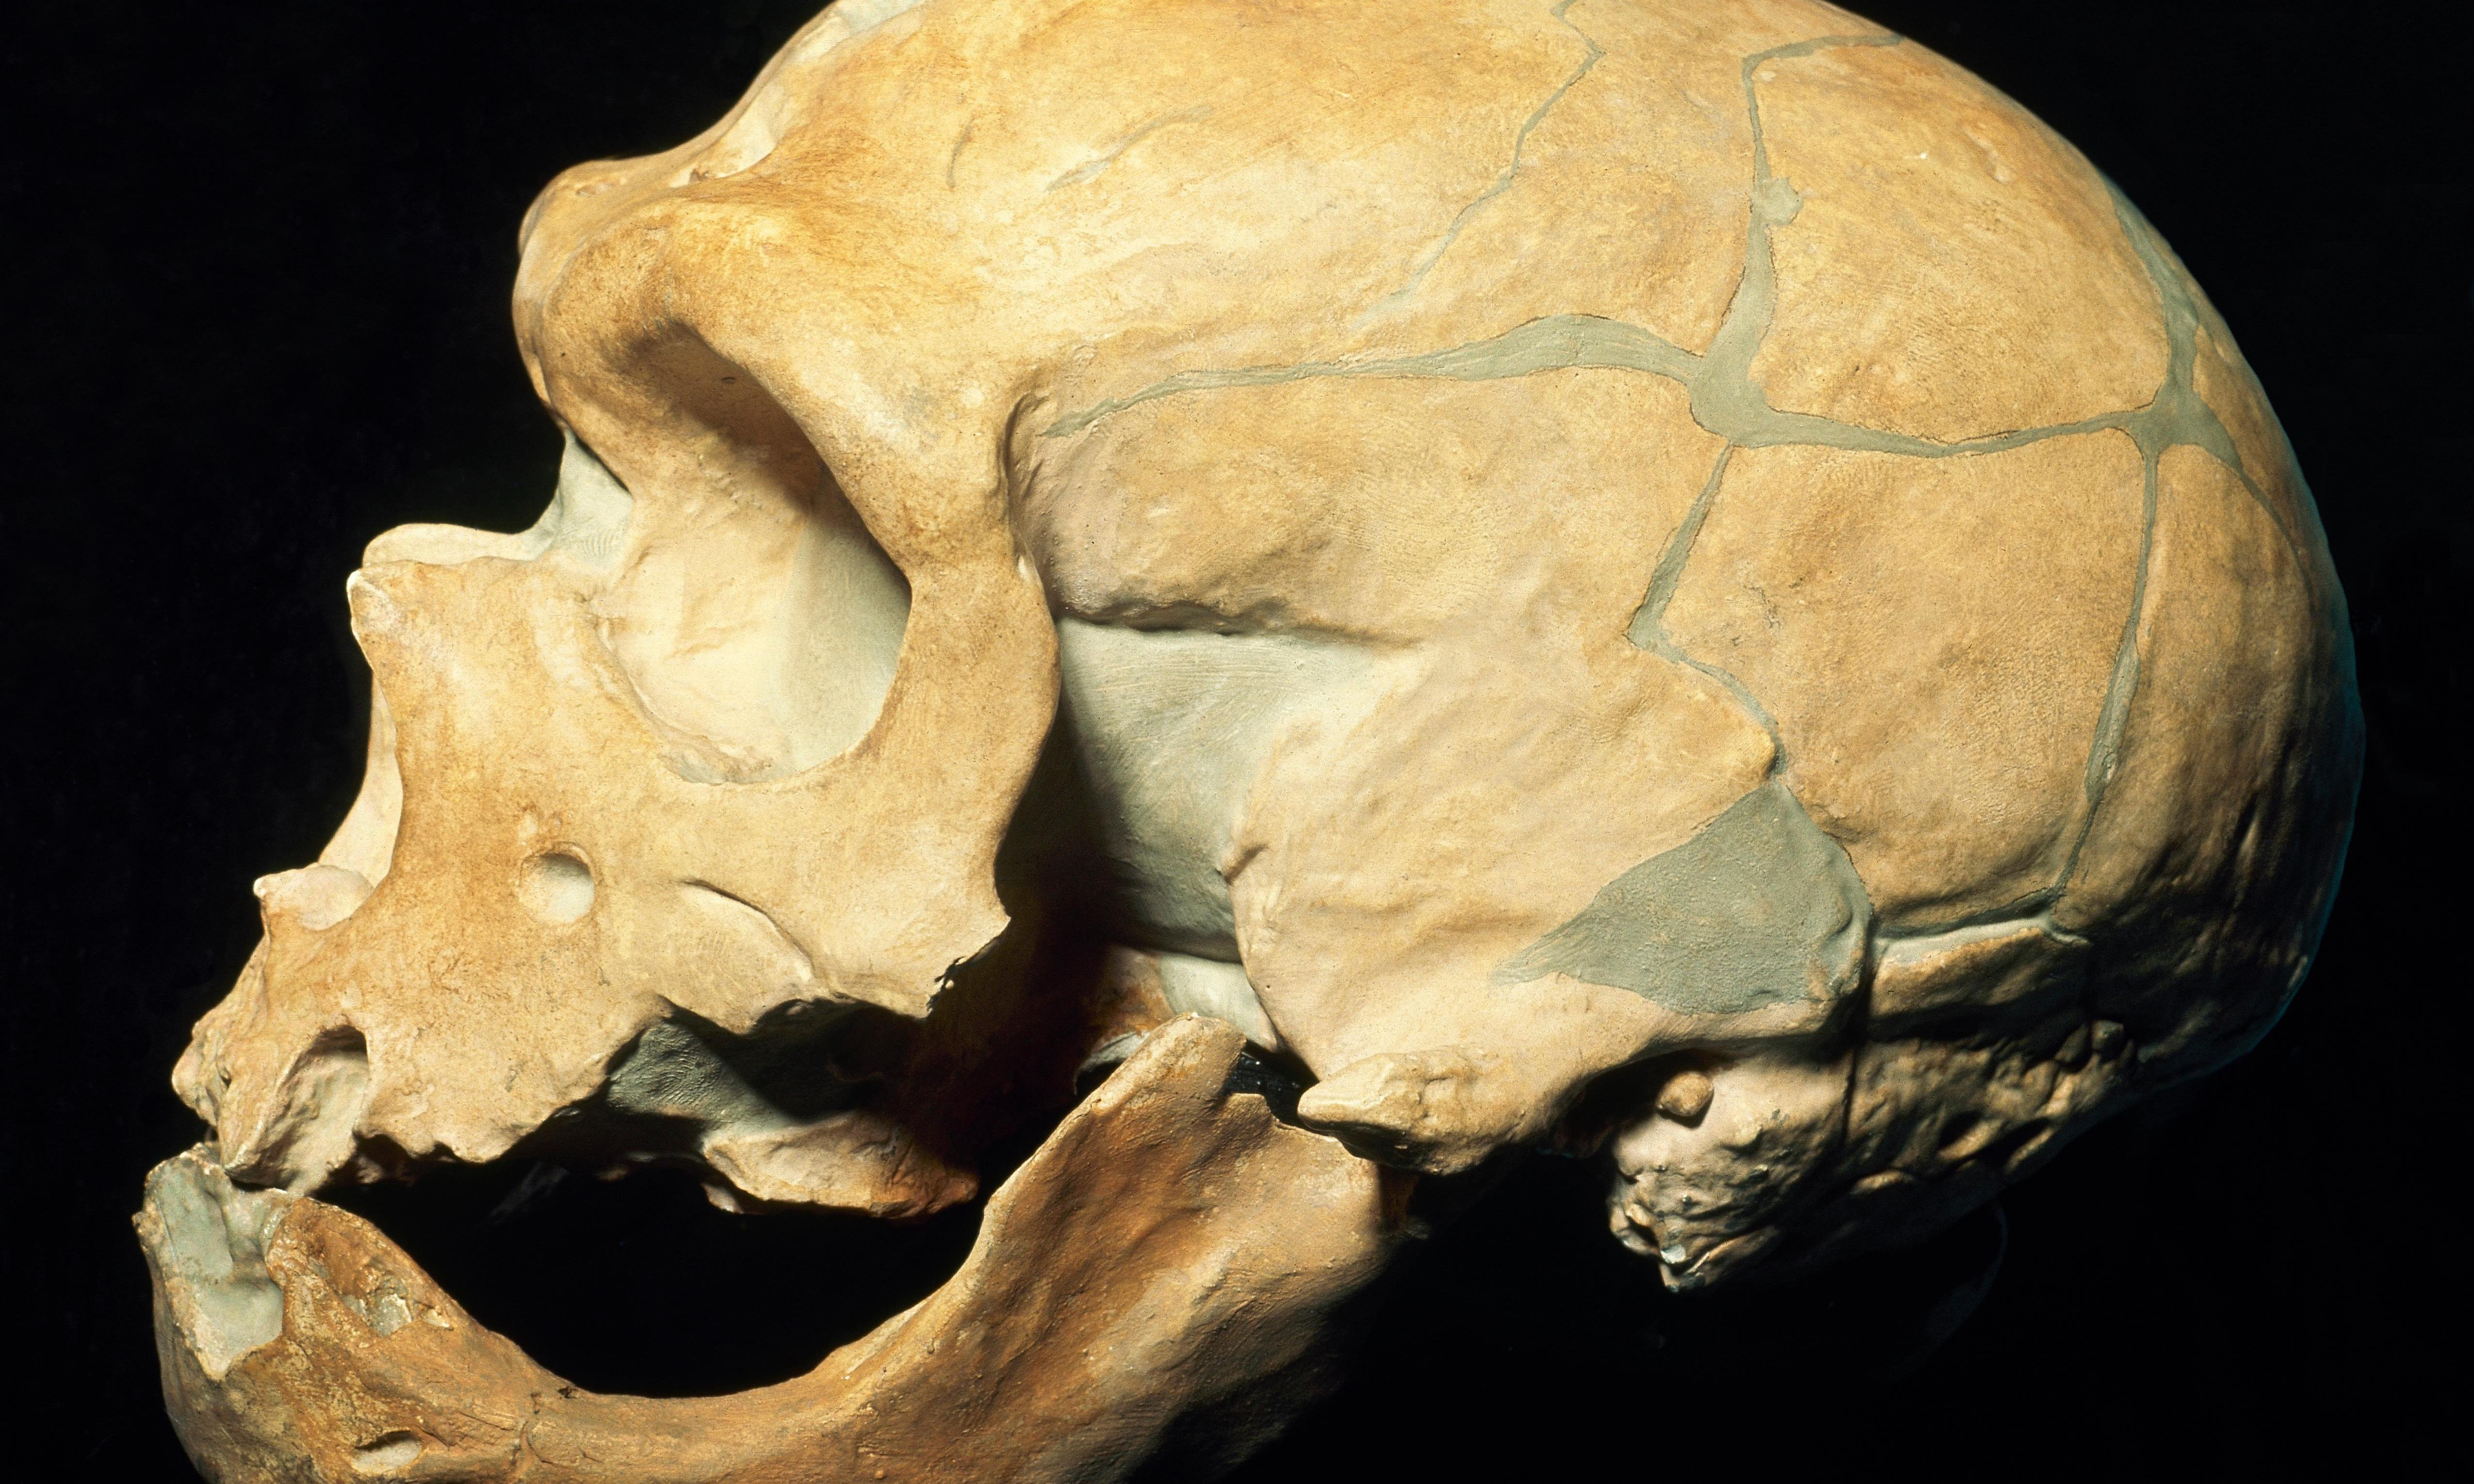 Neanderthal genes found for first time in African populations